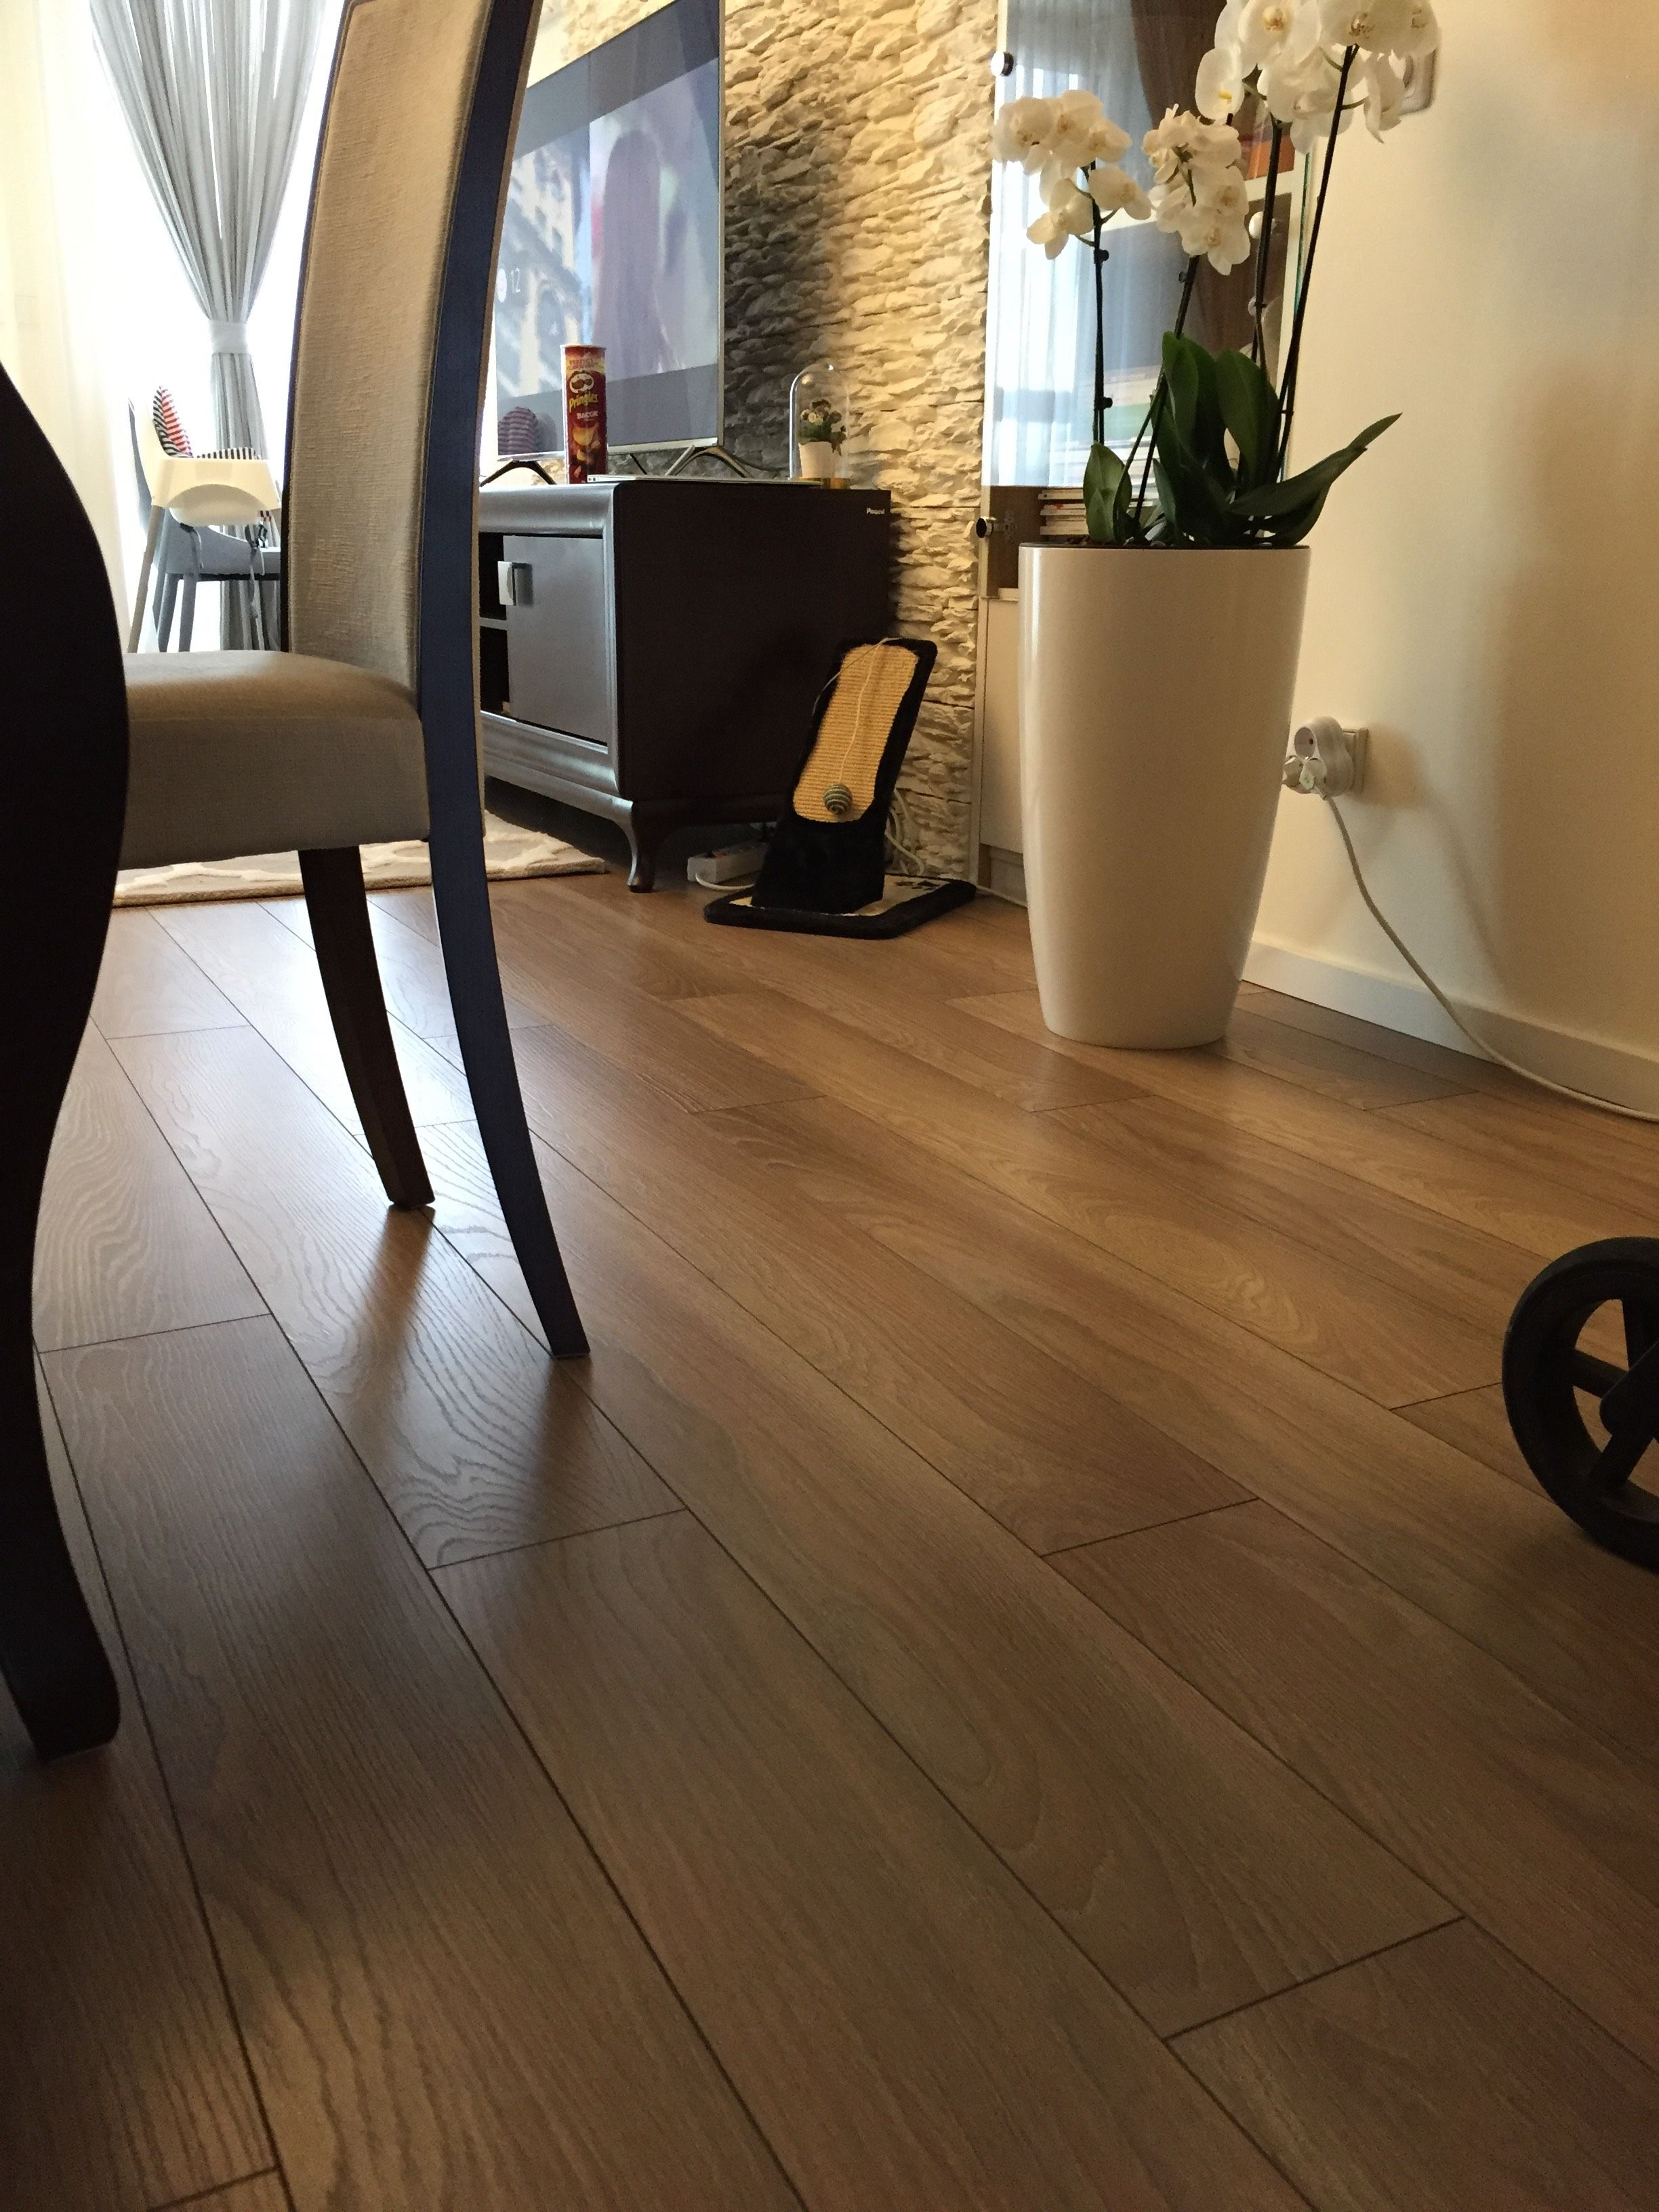 Engineered oak wooden floors, light smoked oak, brushed and 3 coats of hard- wax oil. Suitable for commercial and residential installations.